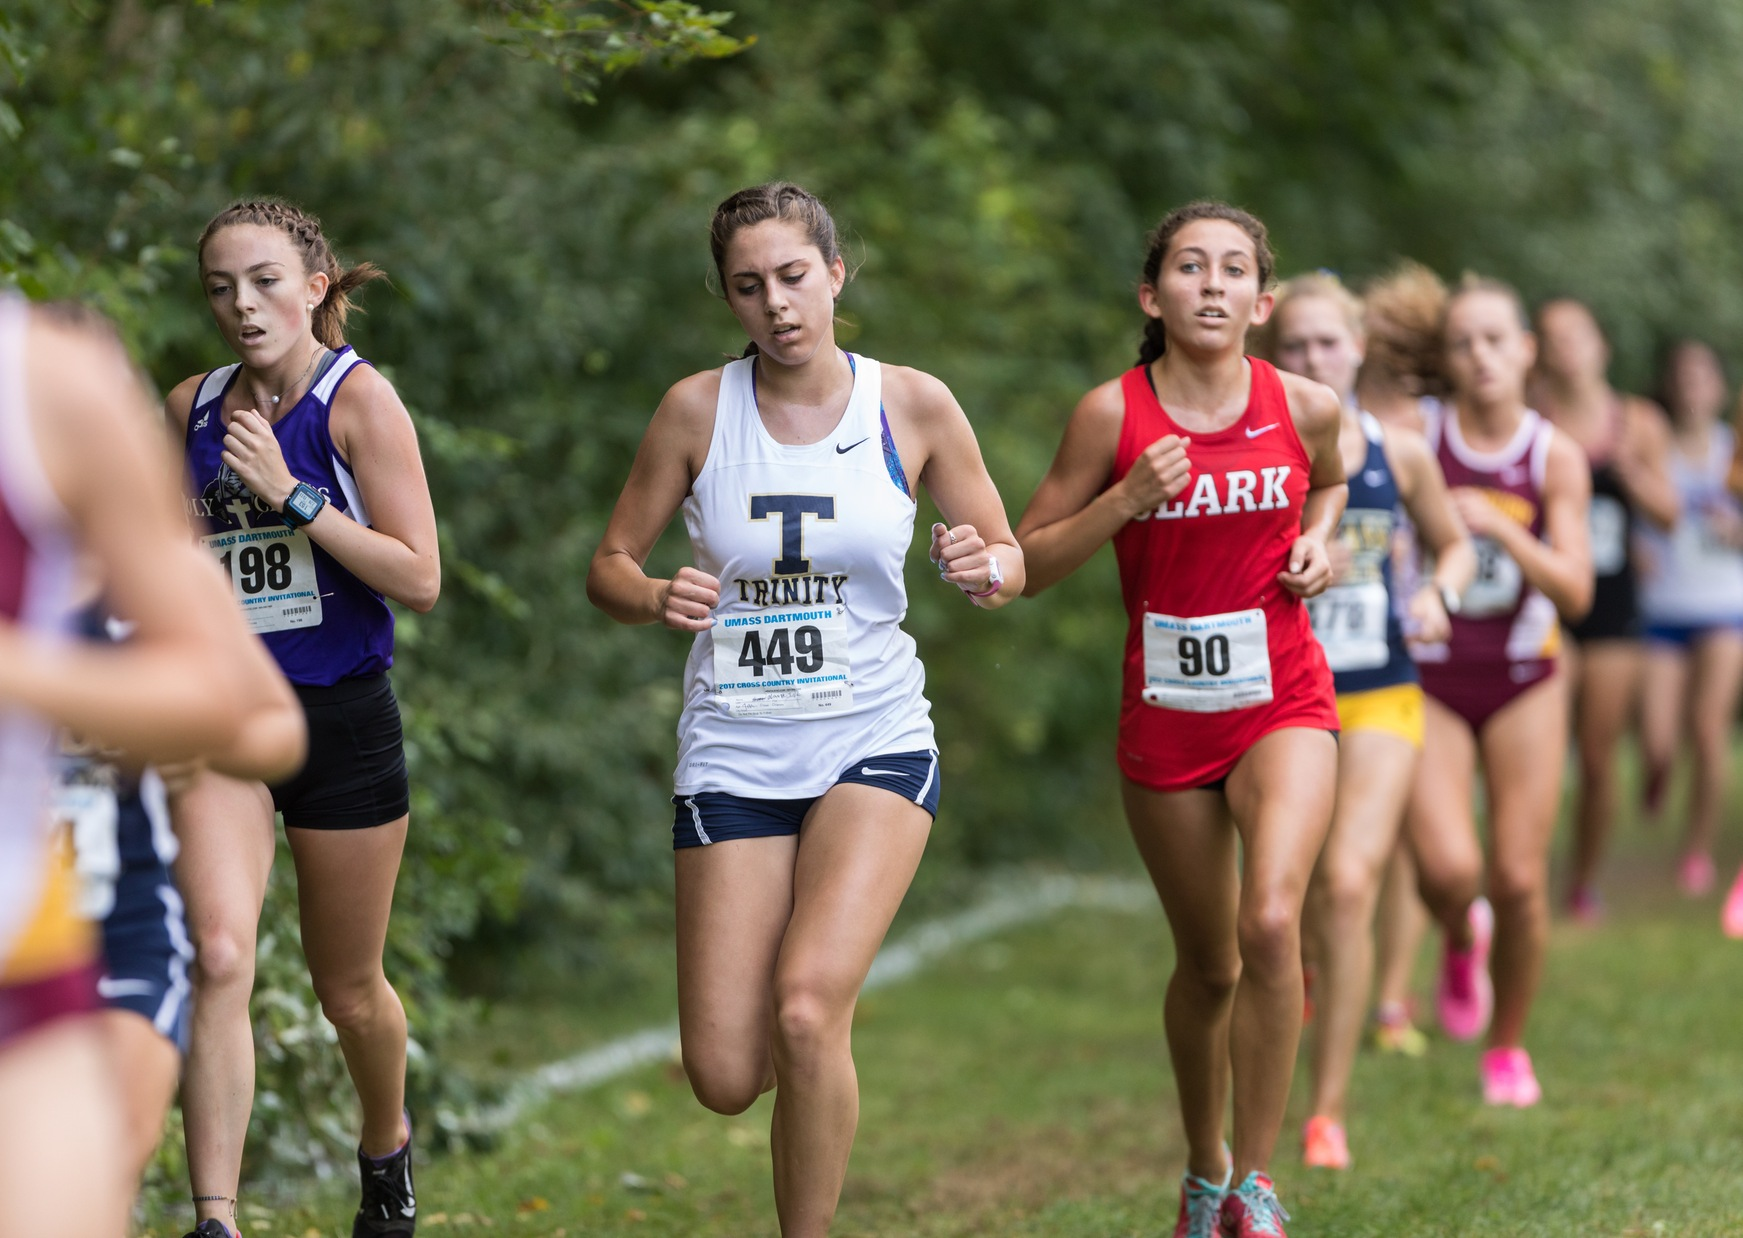 Women's Cross Country Finishes 15th at Gettysburg College Invitational